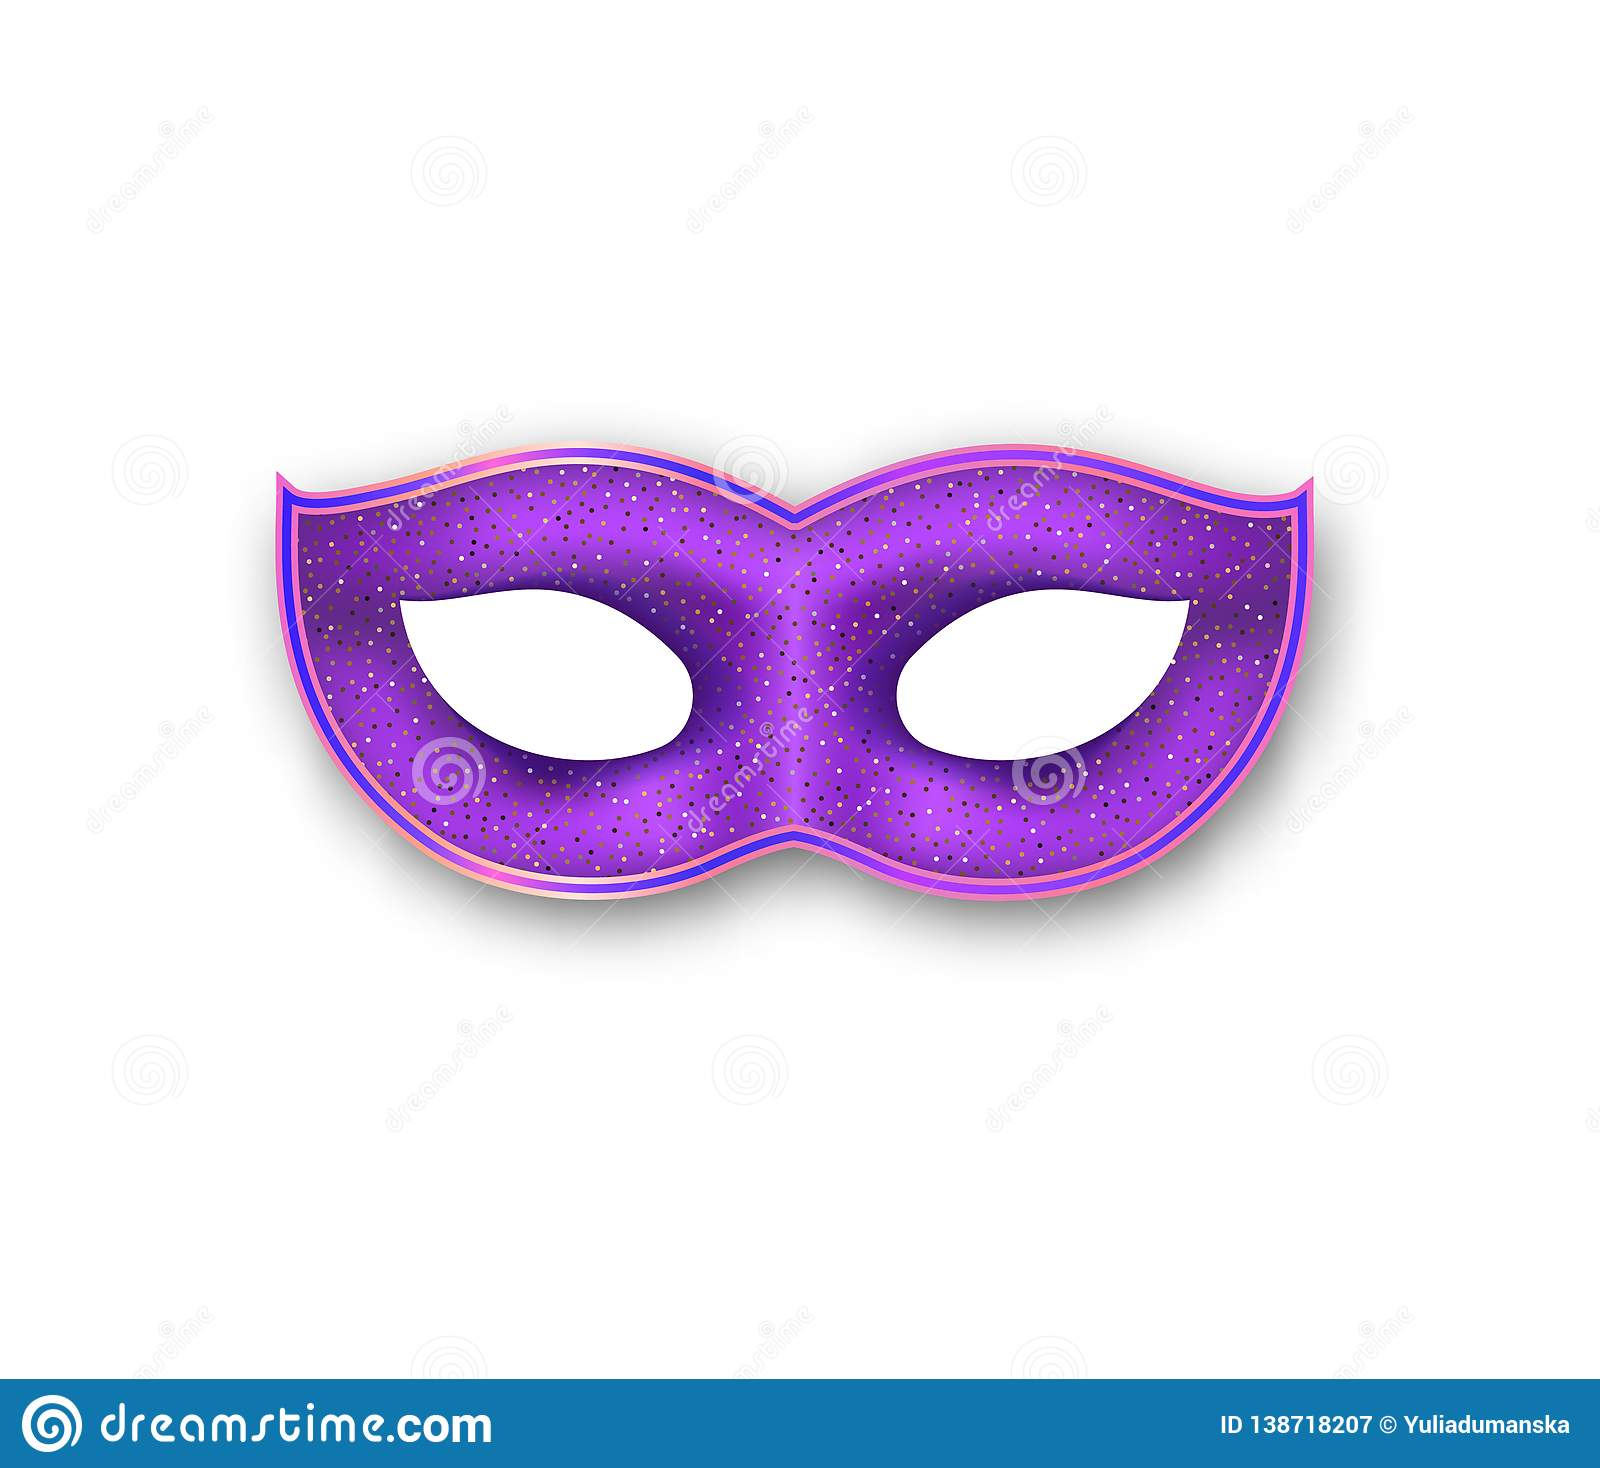 5cf5f9454692 Mardi Gras mask purple color with golden glitter. Venetian painted Carnival  Face Mask. Masquerade realistic colorful party decoration isolated on white  ...